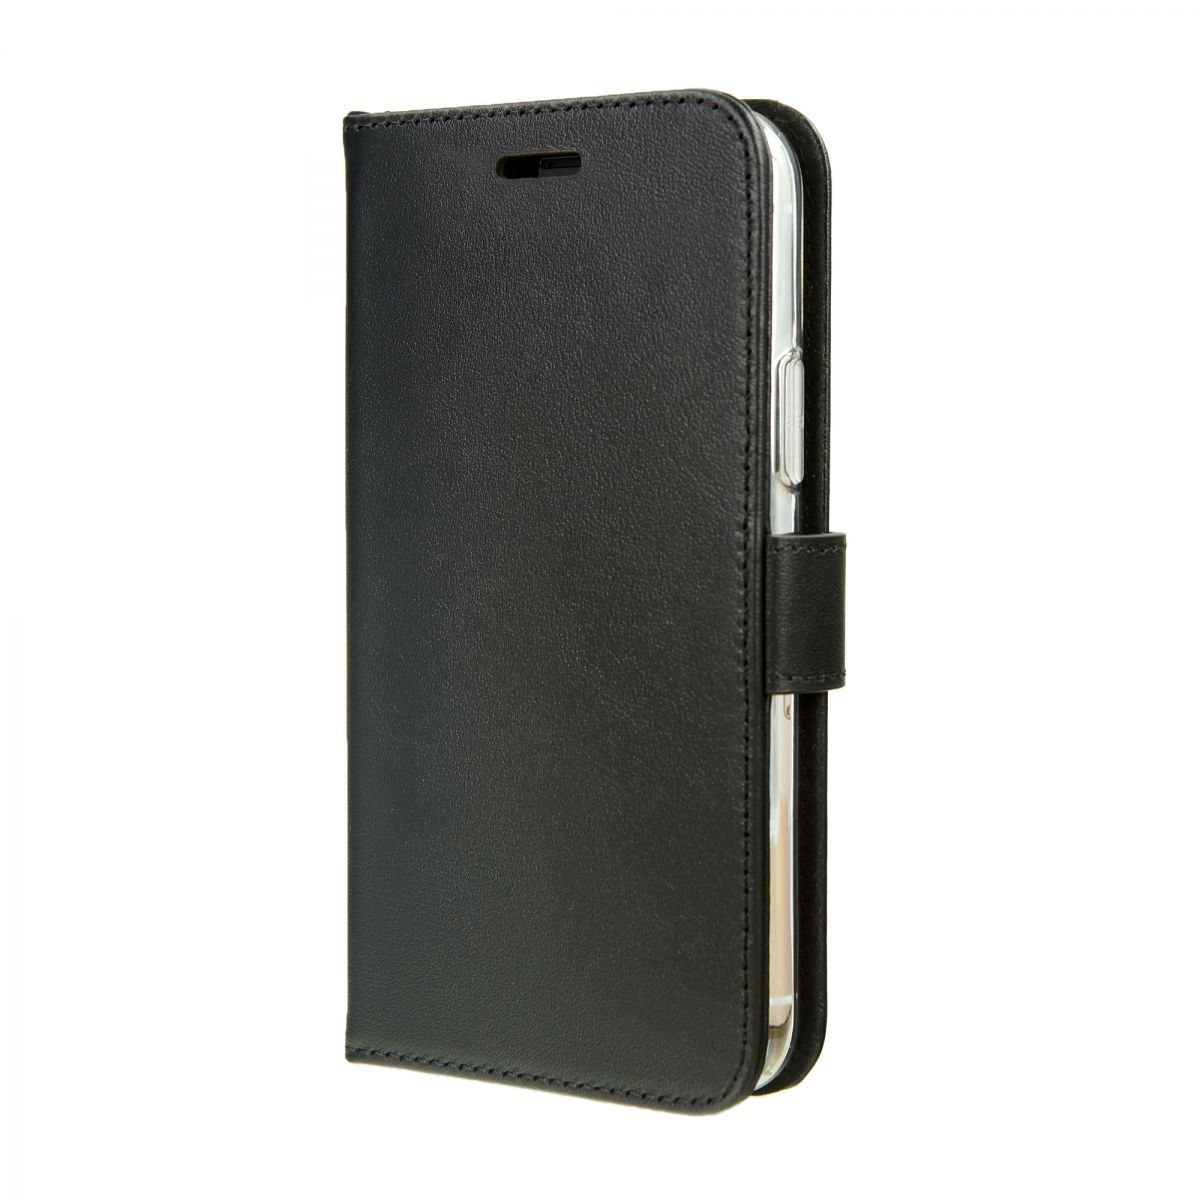 valenta booklet classic luxe black iphone 11 pro